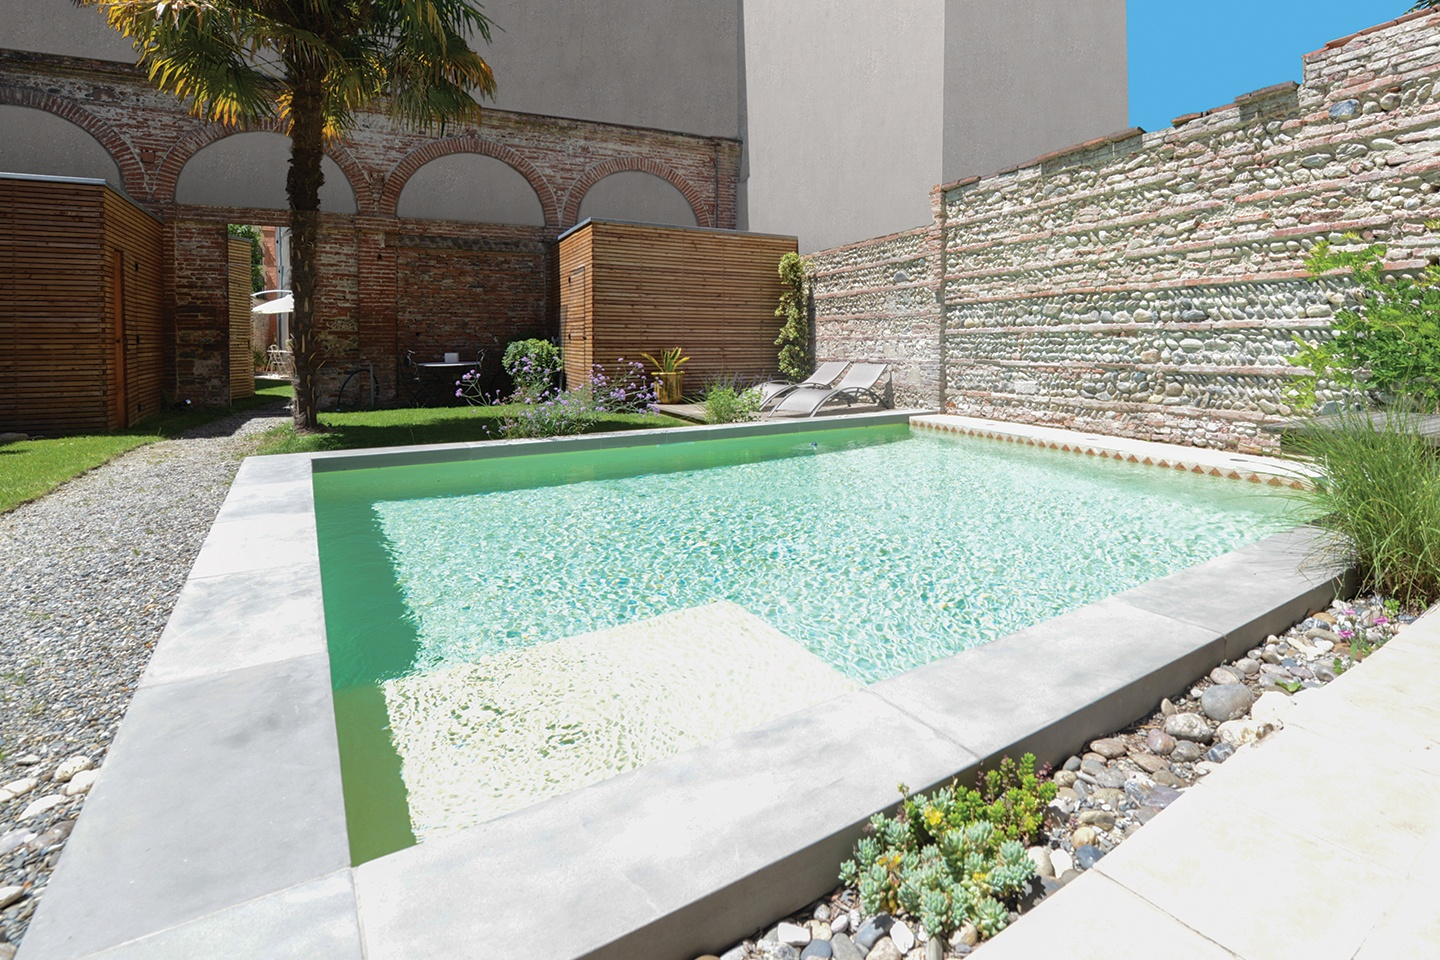 piscine-beton-projete-rectangle-familiale-diffazur-piscines